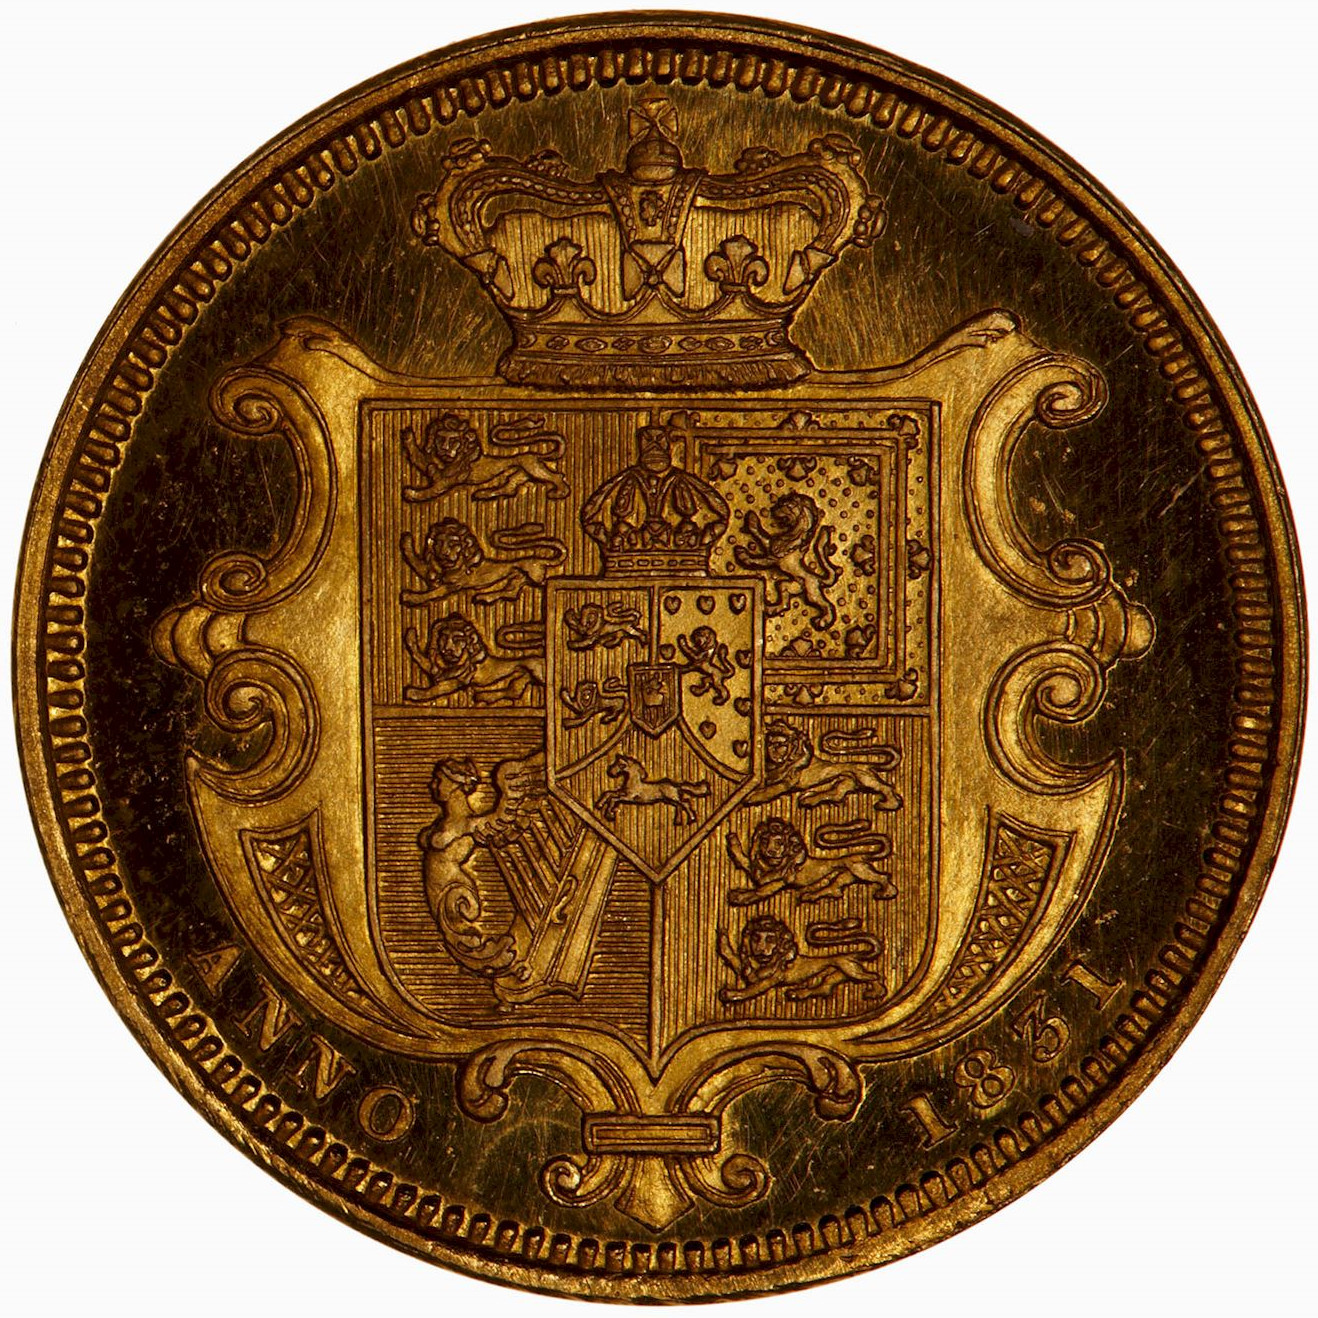 Half Sovereign (Pre-decimal): Photo Proof Coin - Half-Sovereign, William IV, Great Britain, 1831